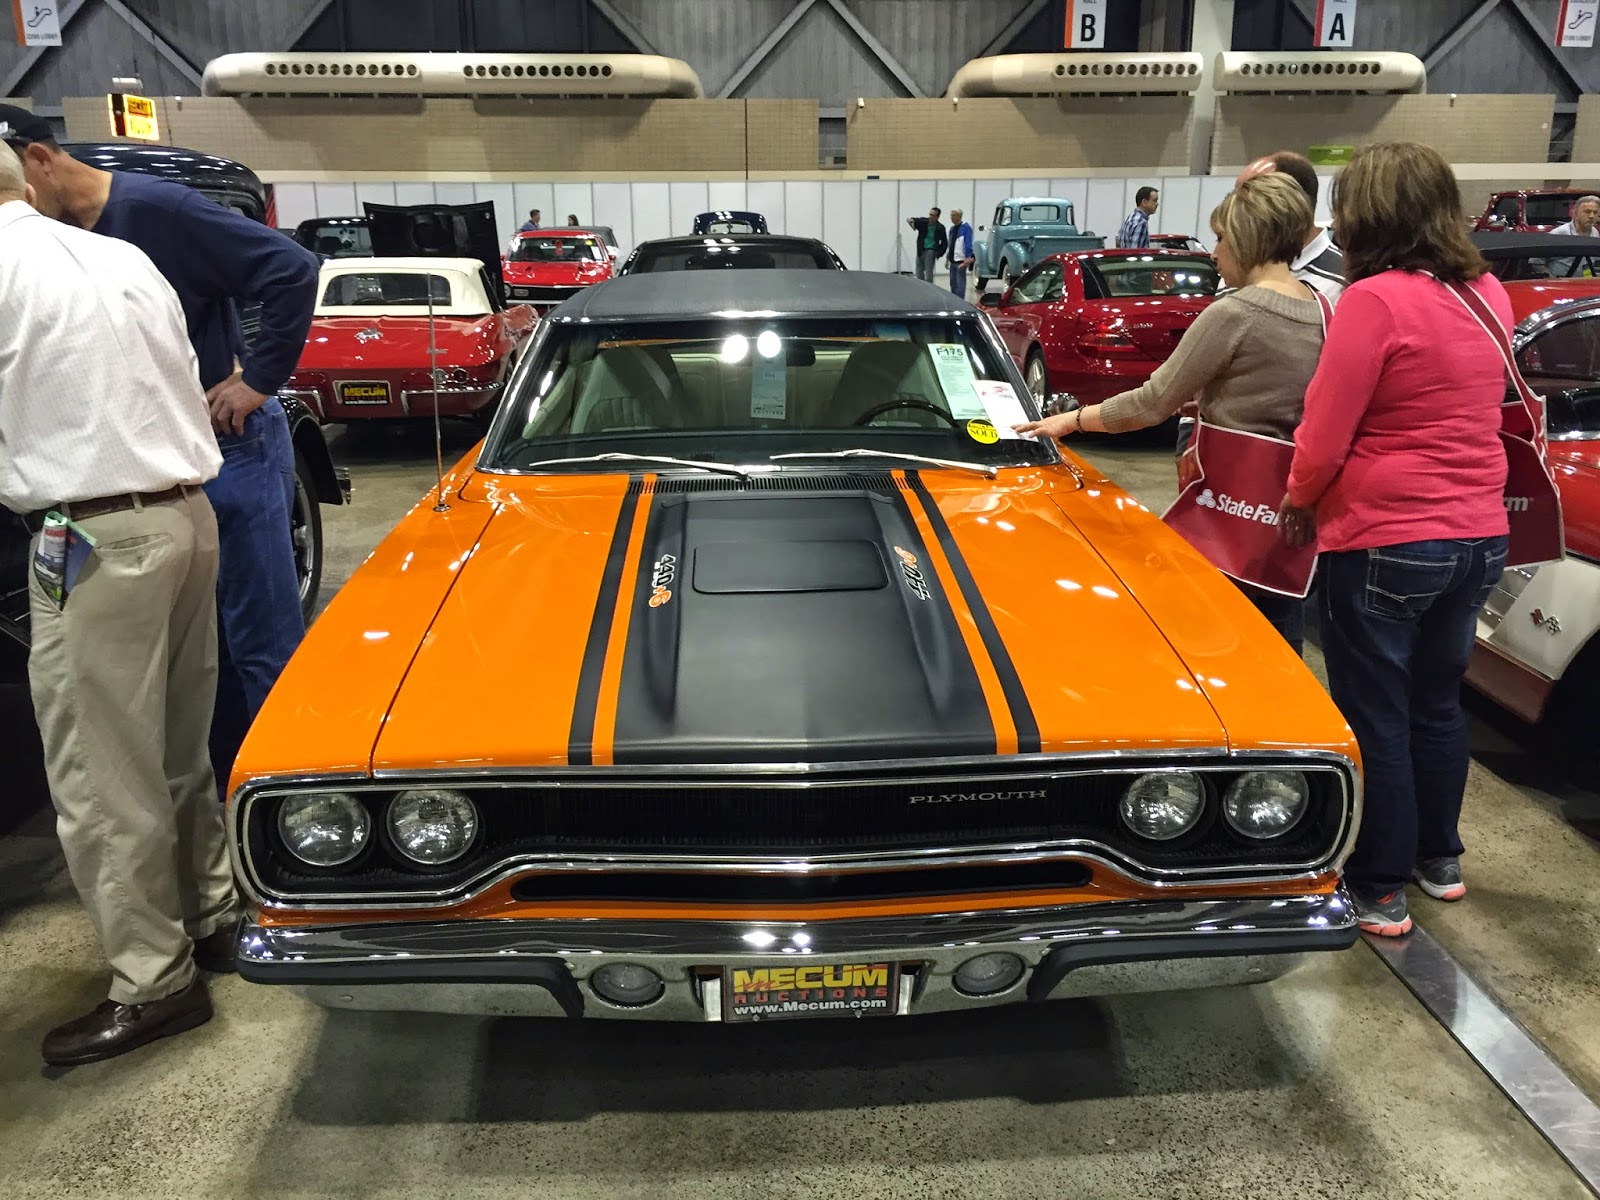 ASAP Transport Solutions News: The Mecum Auto Auction Was In KC This ...